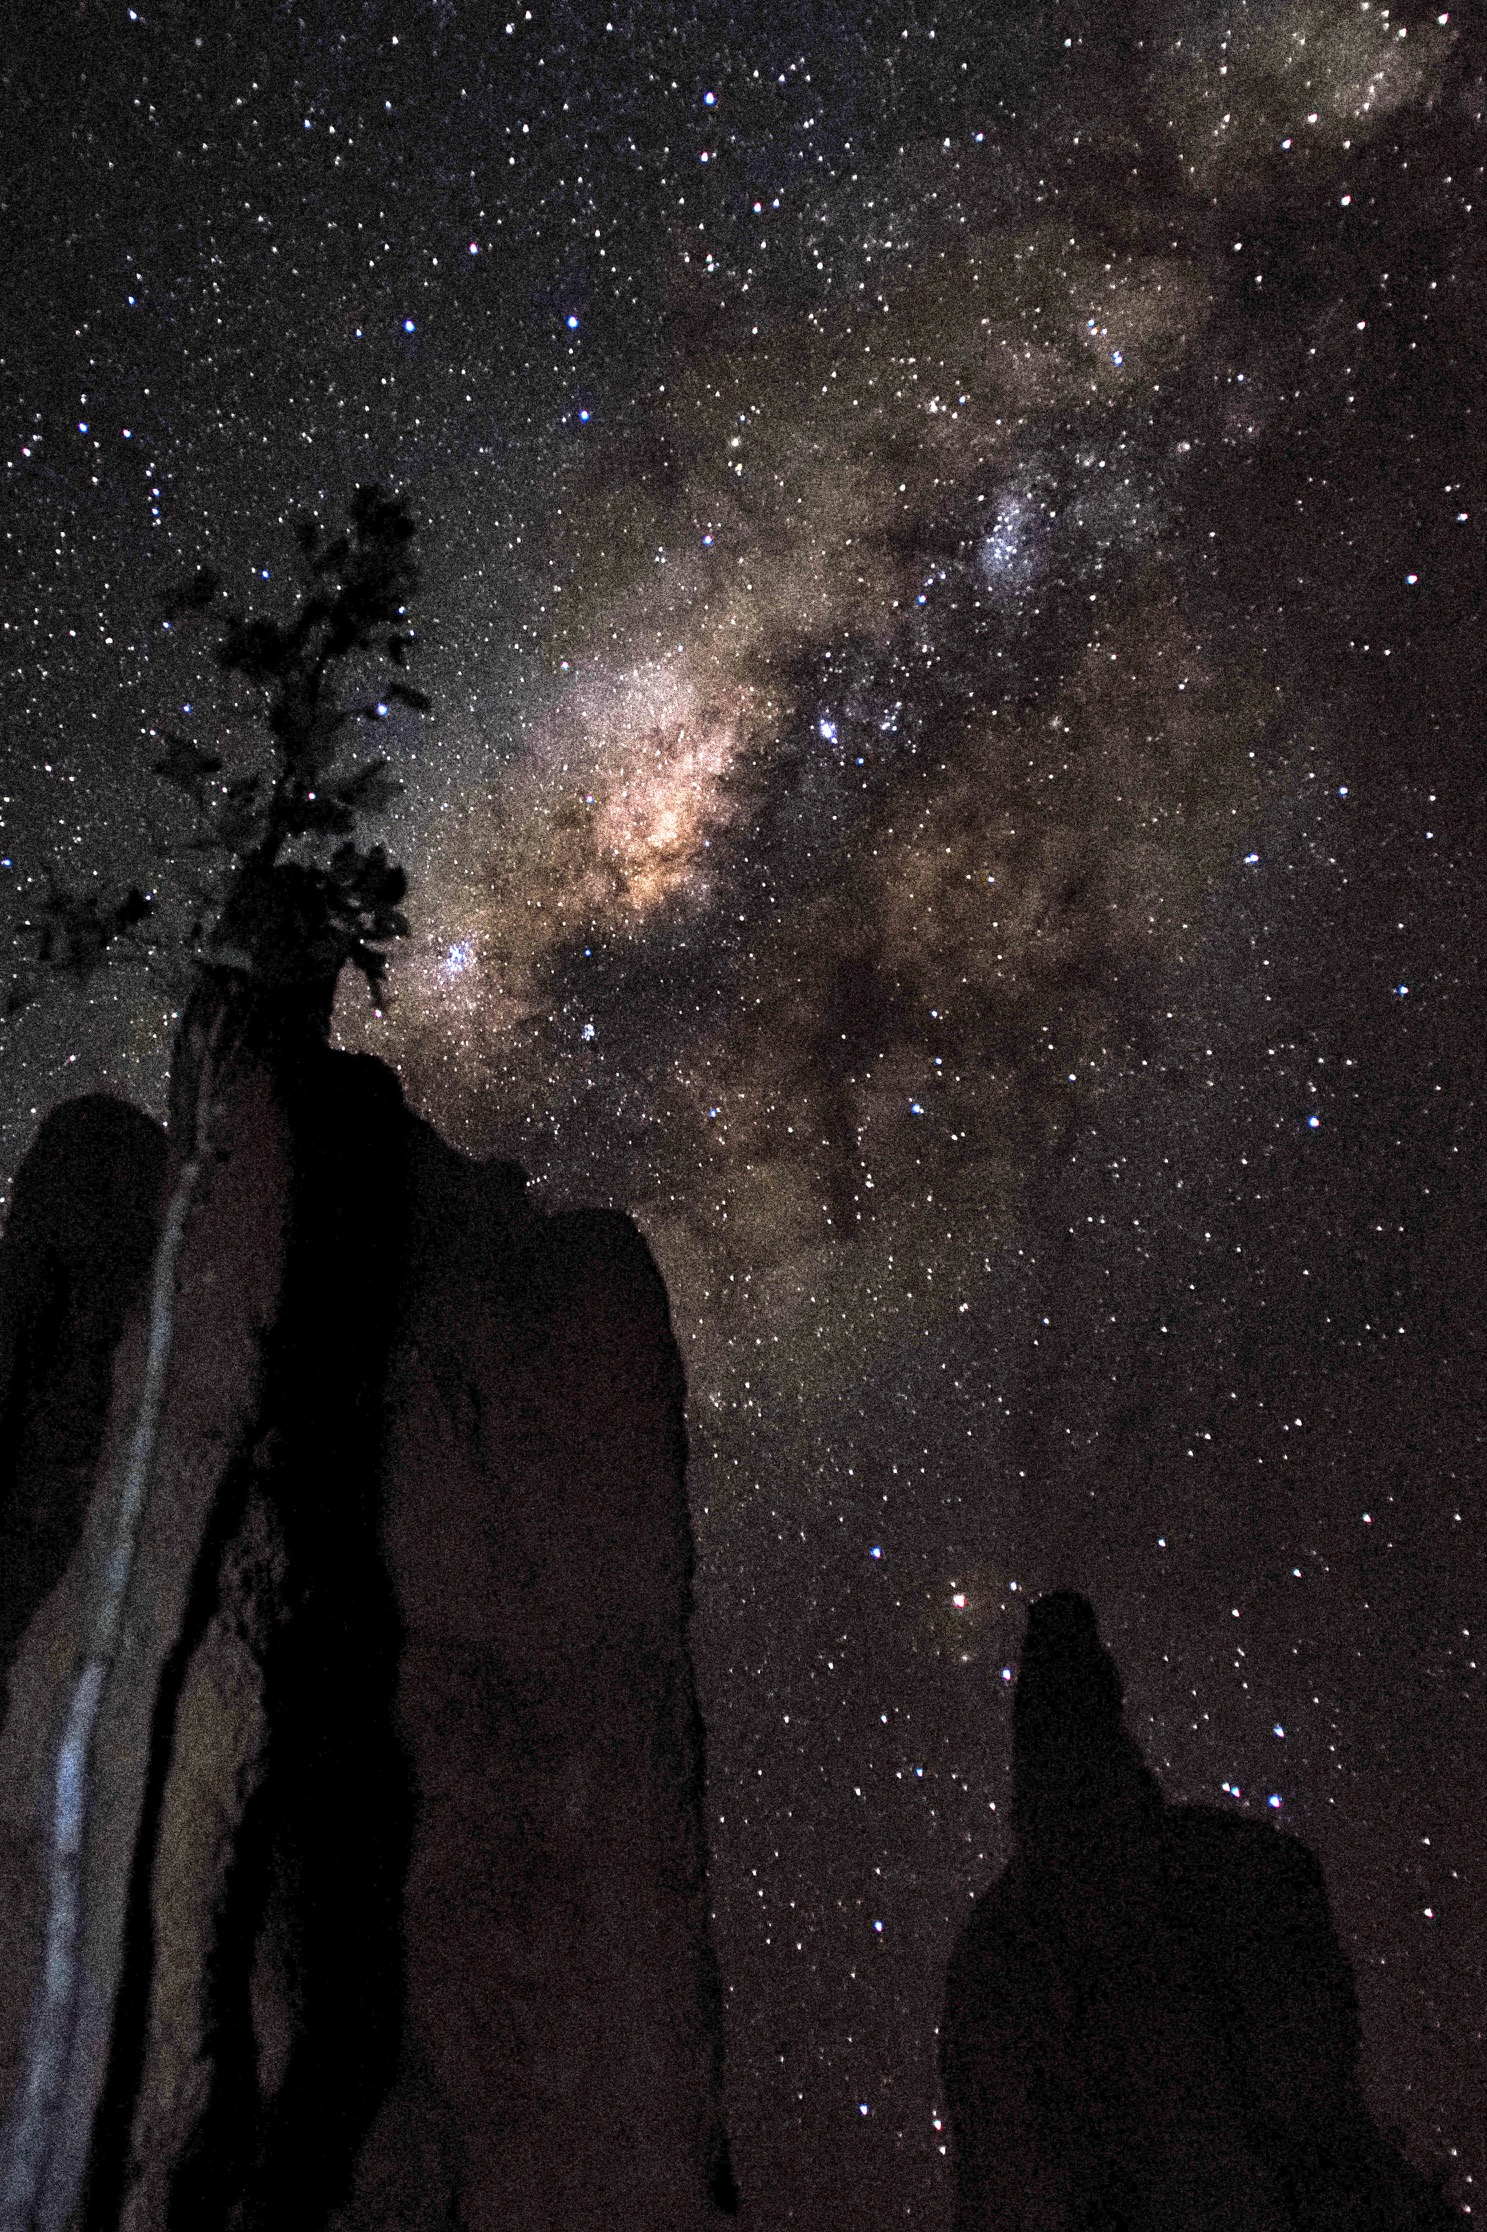 Milky Way over Termite Mounds